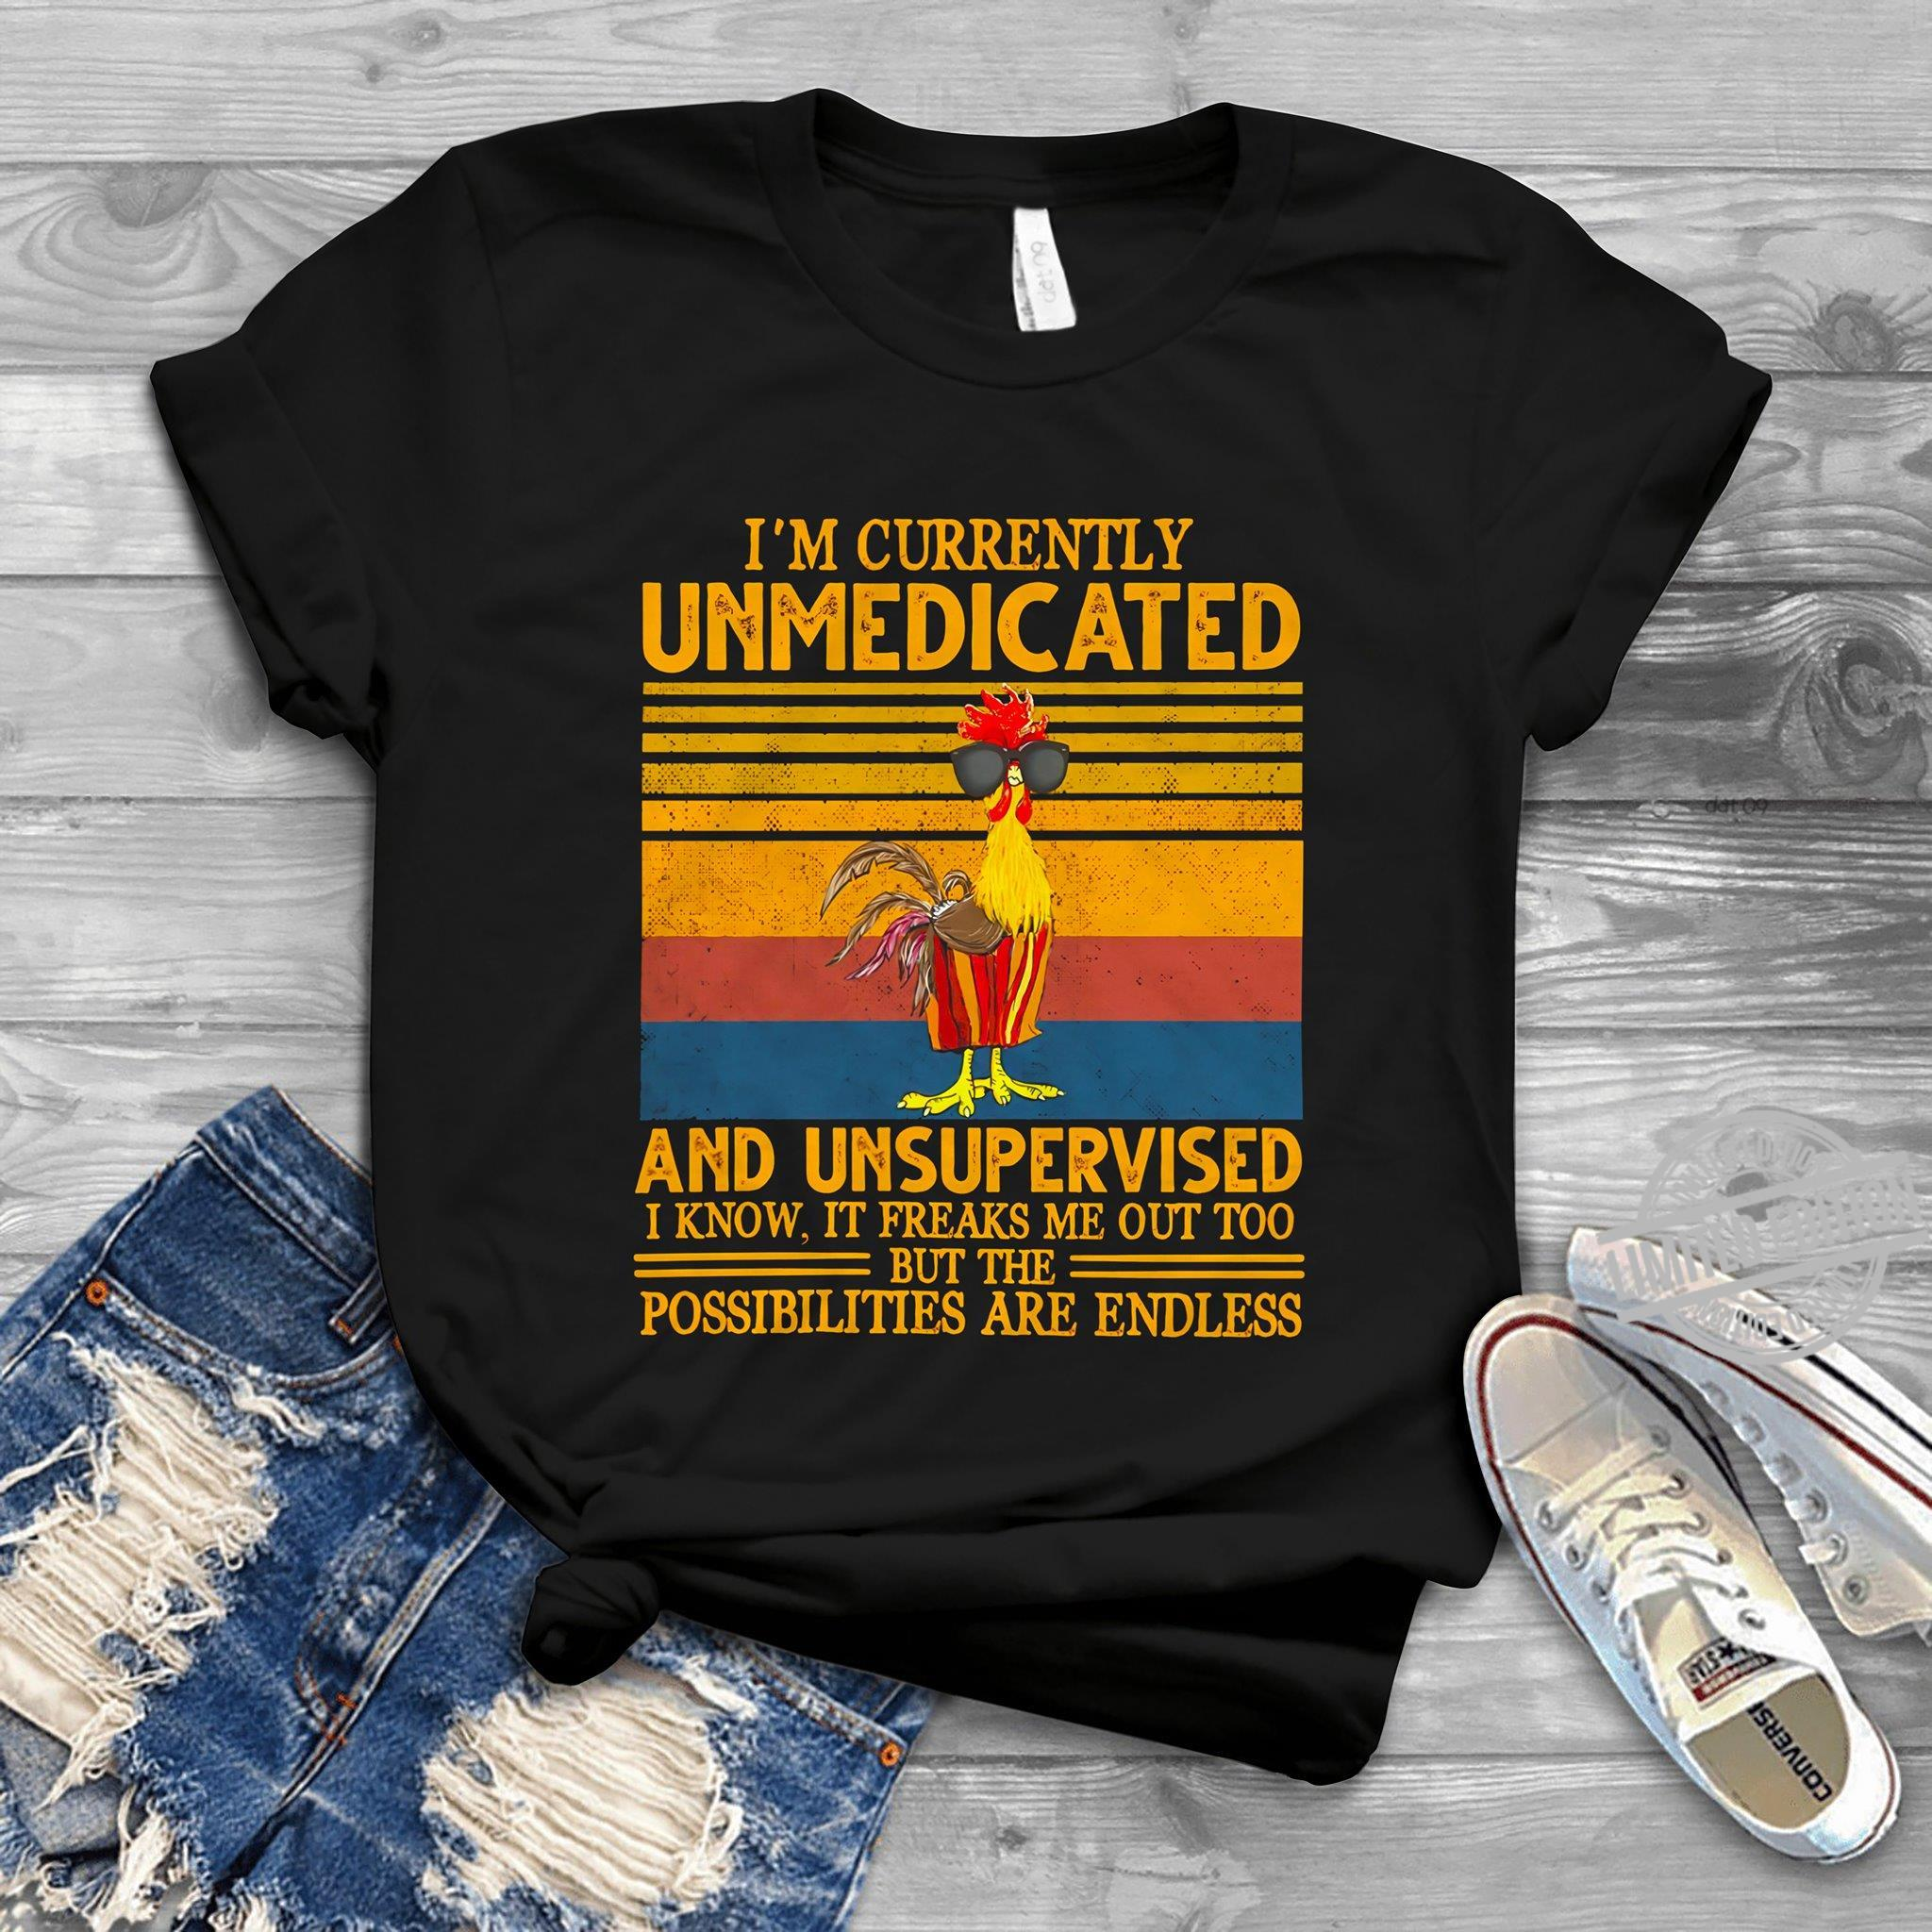 I'm Currently Unmedicated And Unsupervised Possibilities Are Endless Shirt